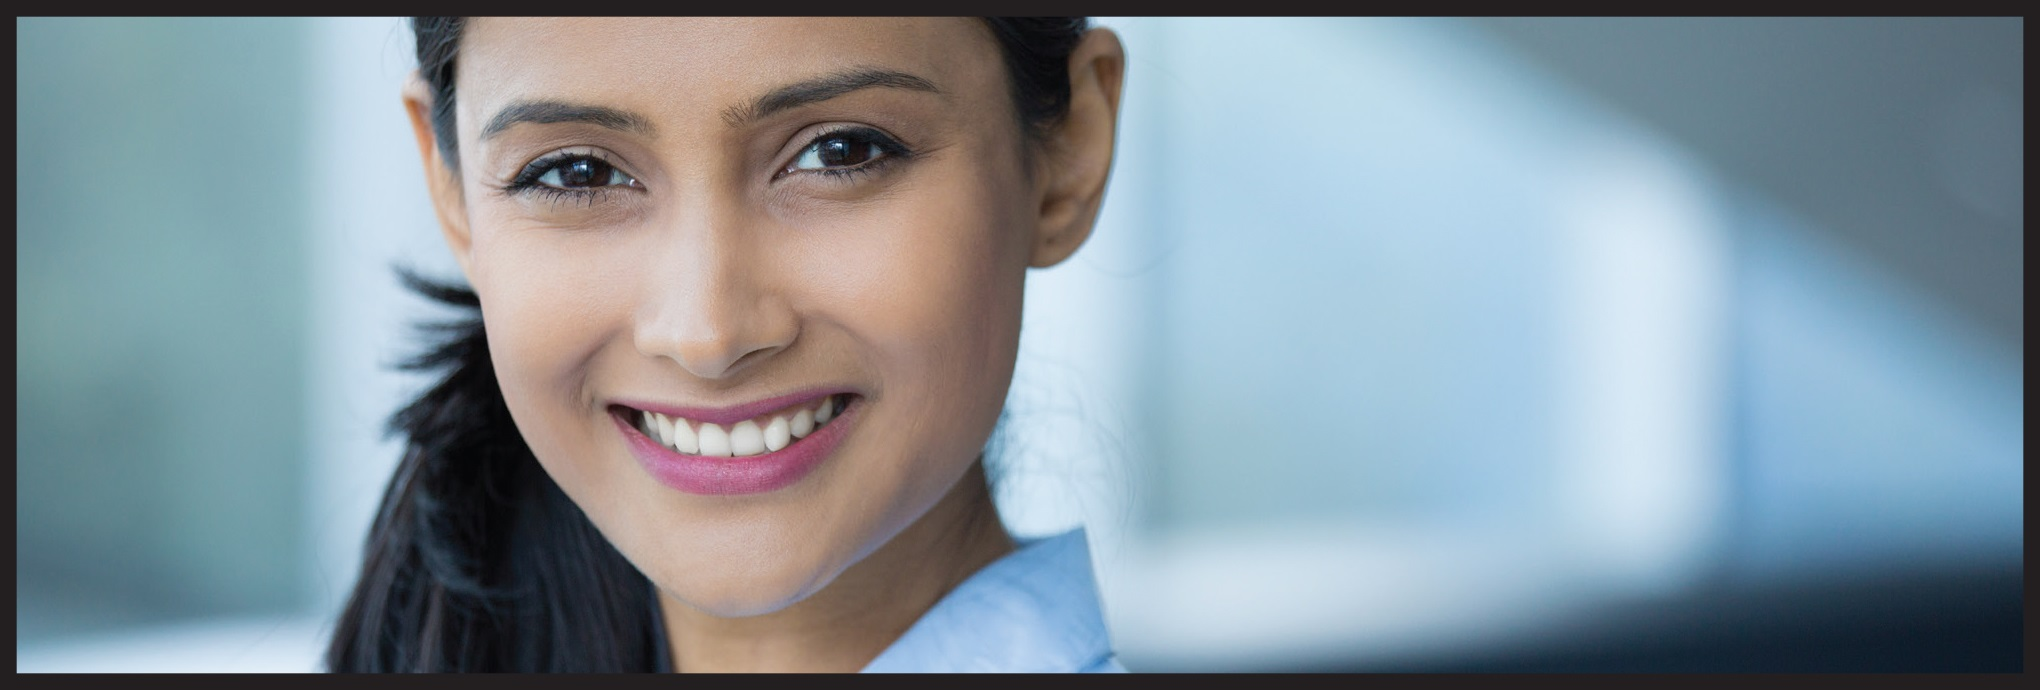 Women's Marketing - Marketing to Multicultural Consumers